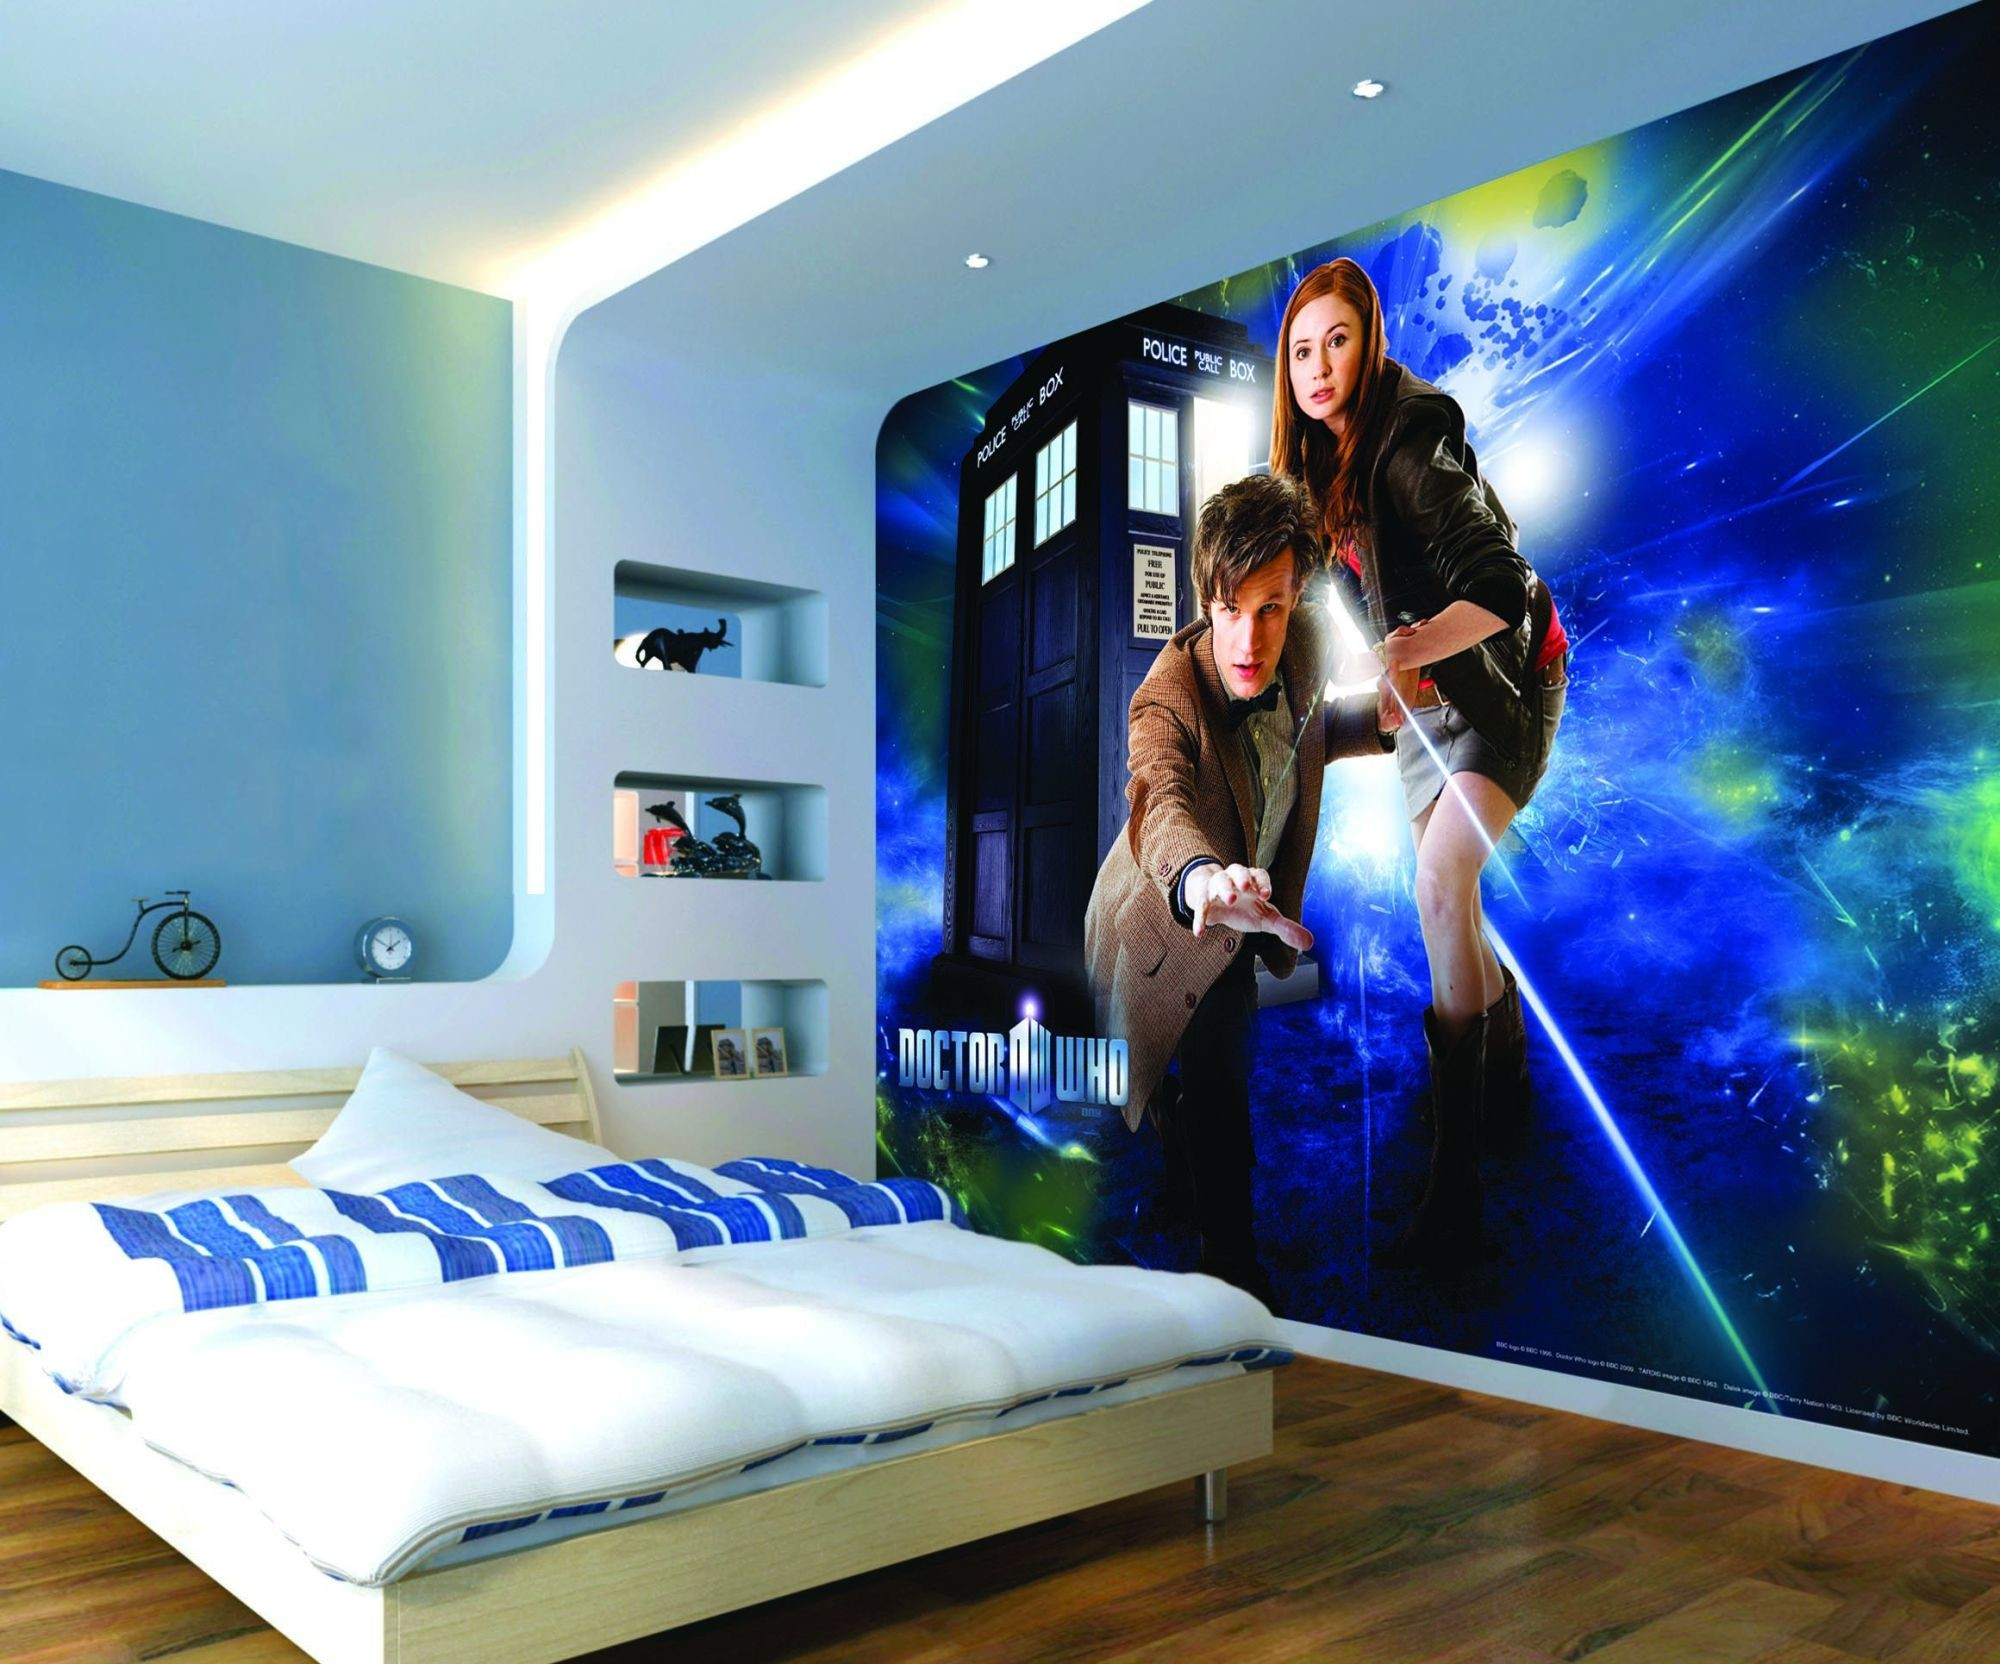 Doctor Who Room Wallpaper 37 images